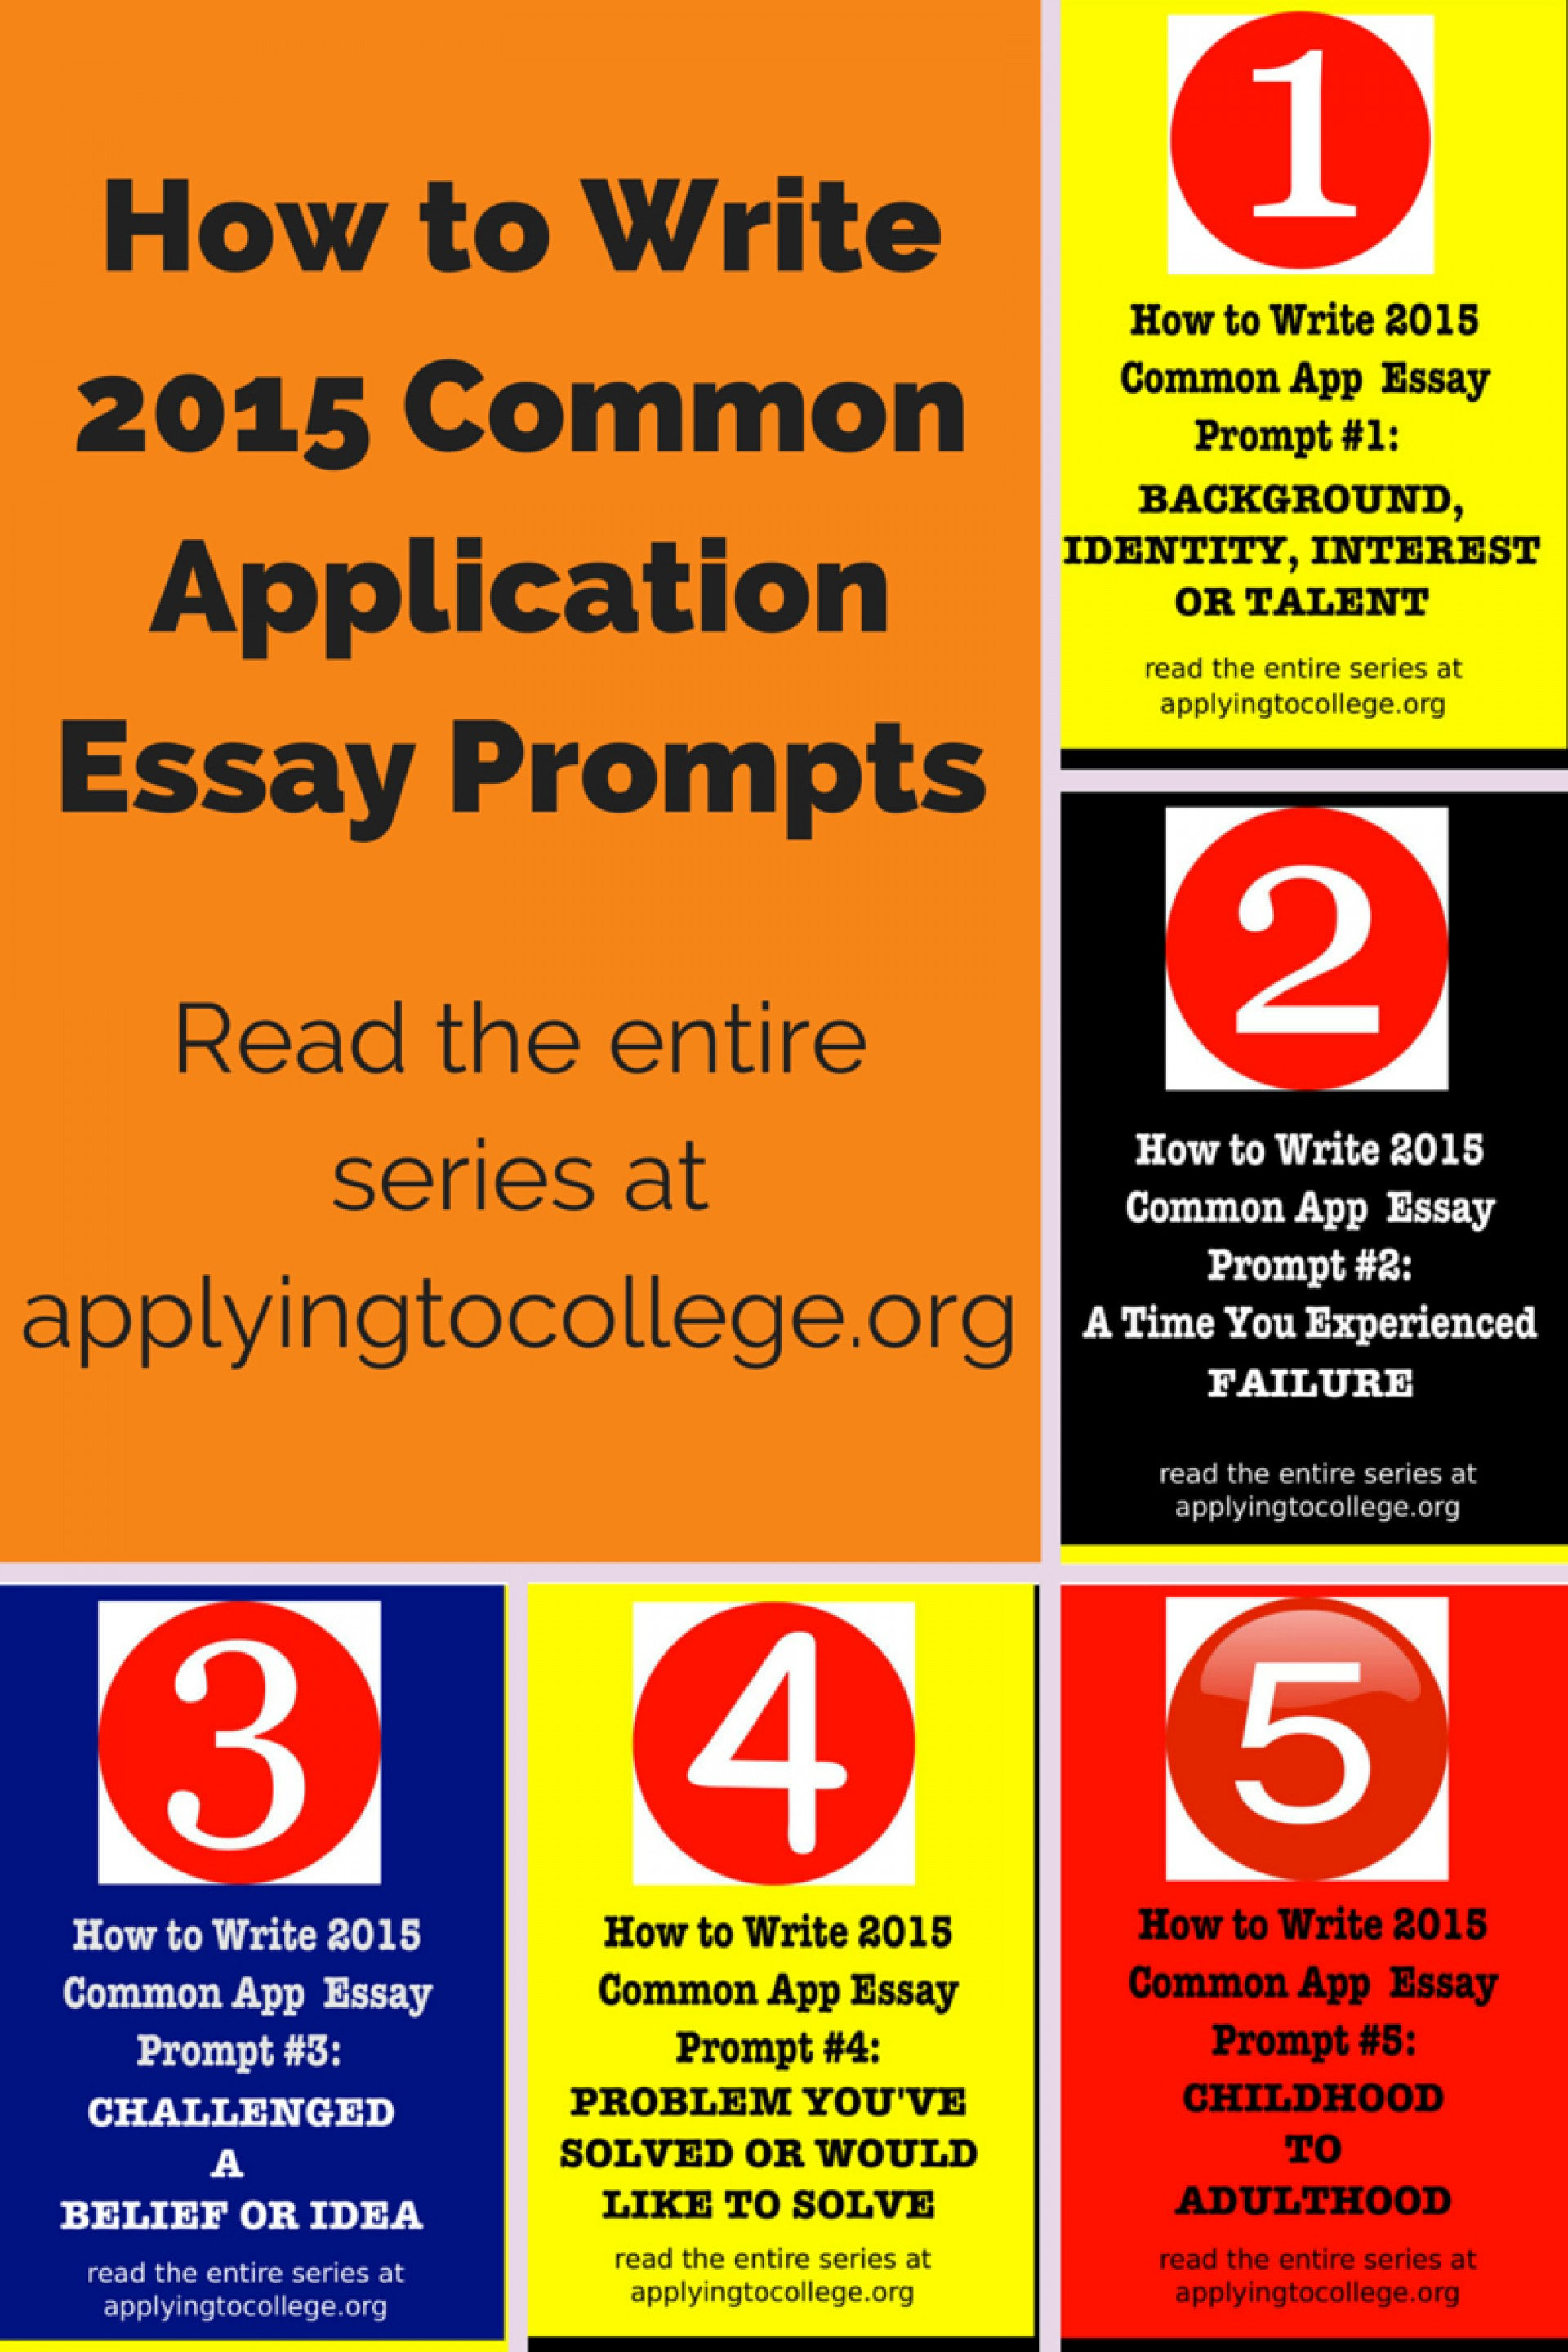 011 Common App Essay Topics Example How To Write Application Prompts Impressive Samples Topic 1 Ideas 2017 1920